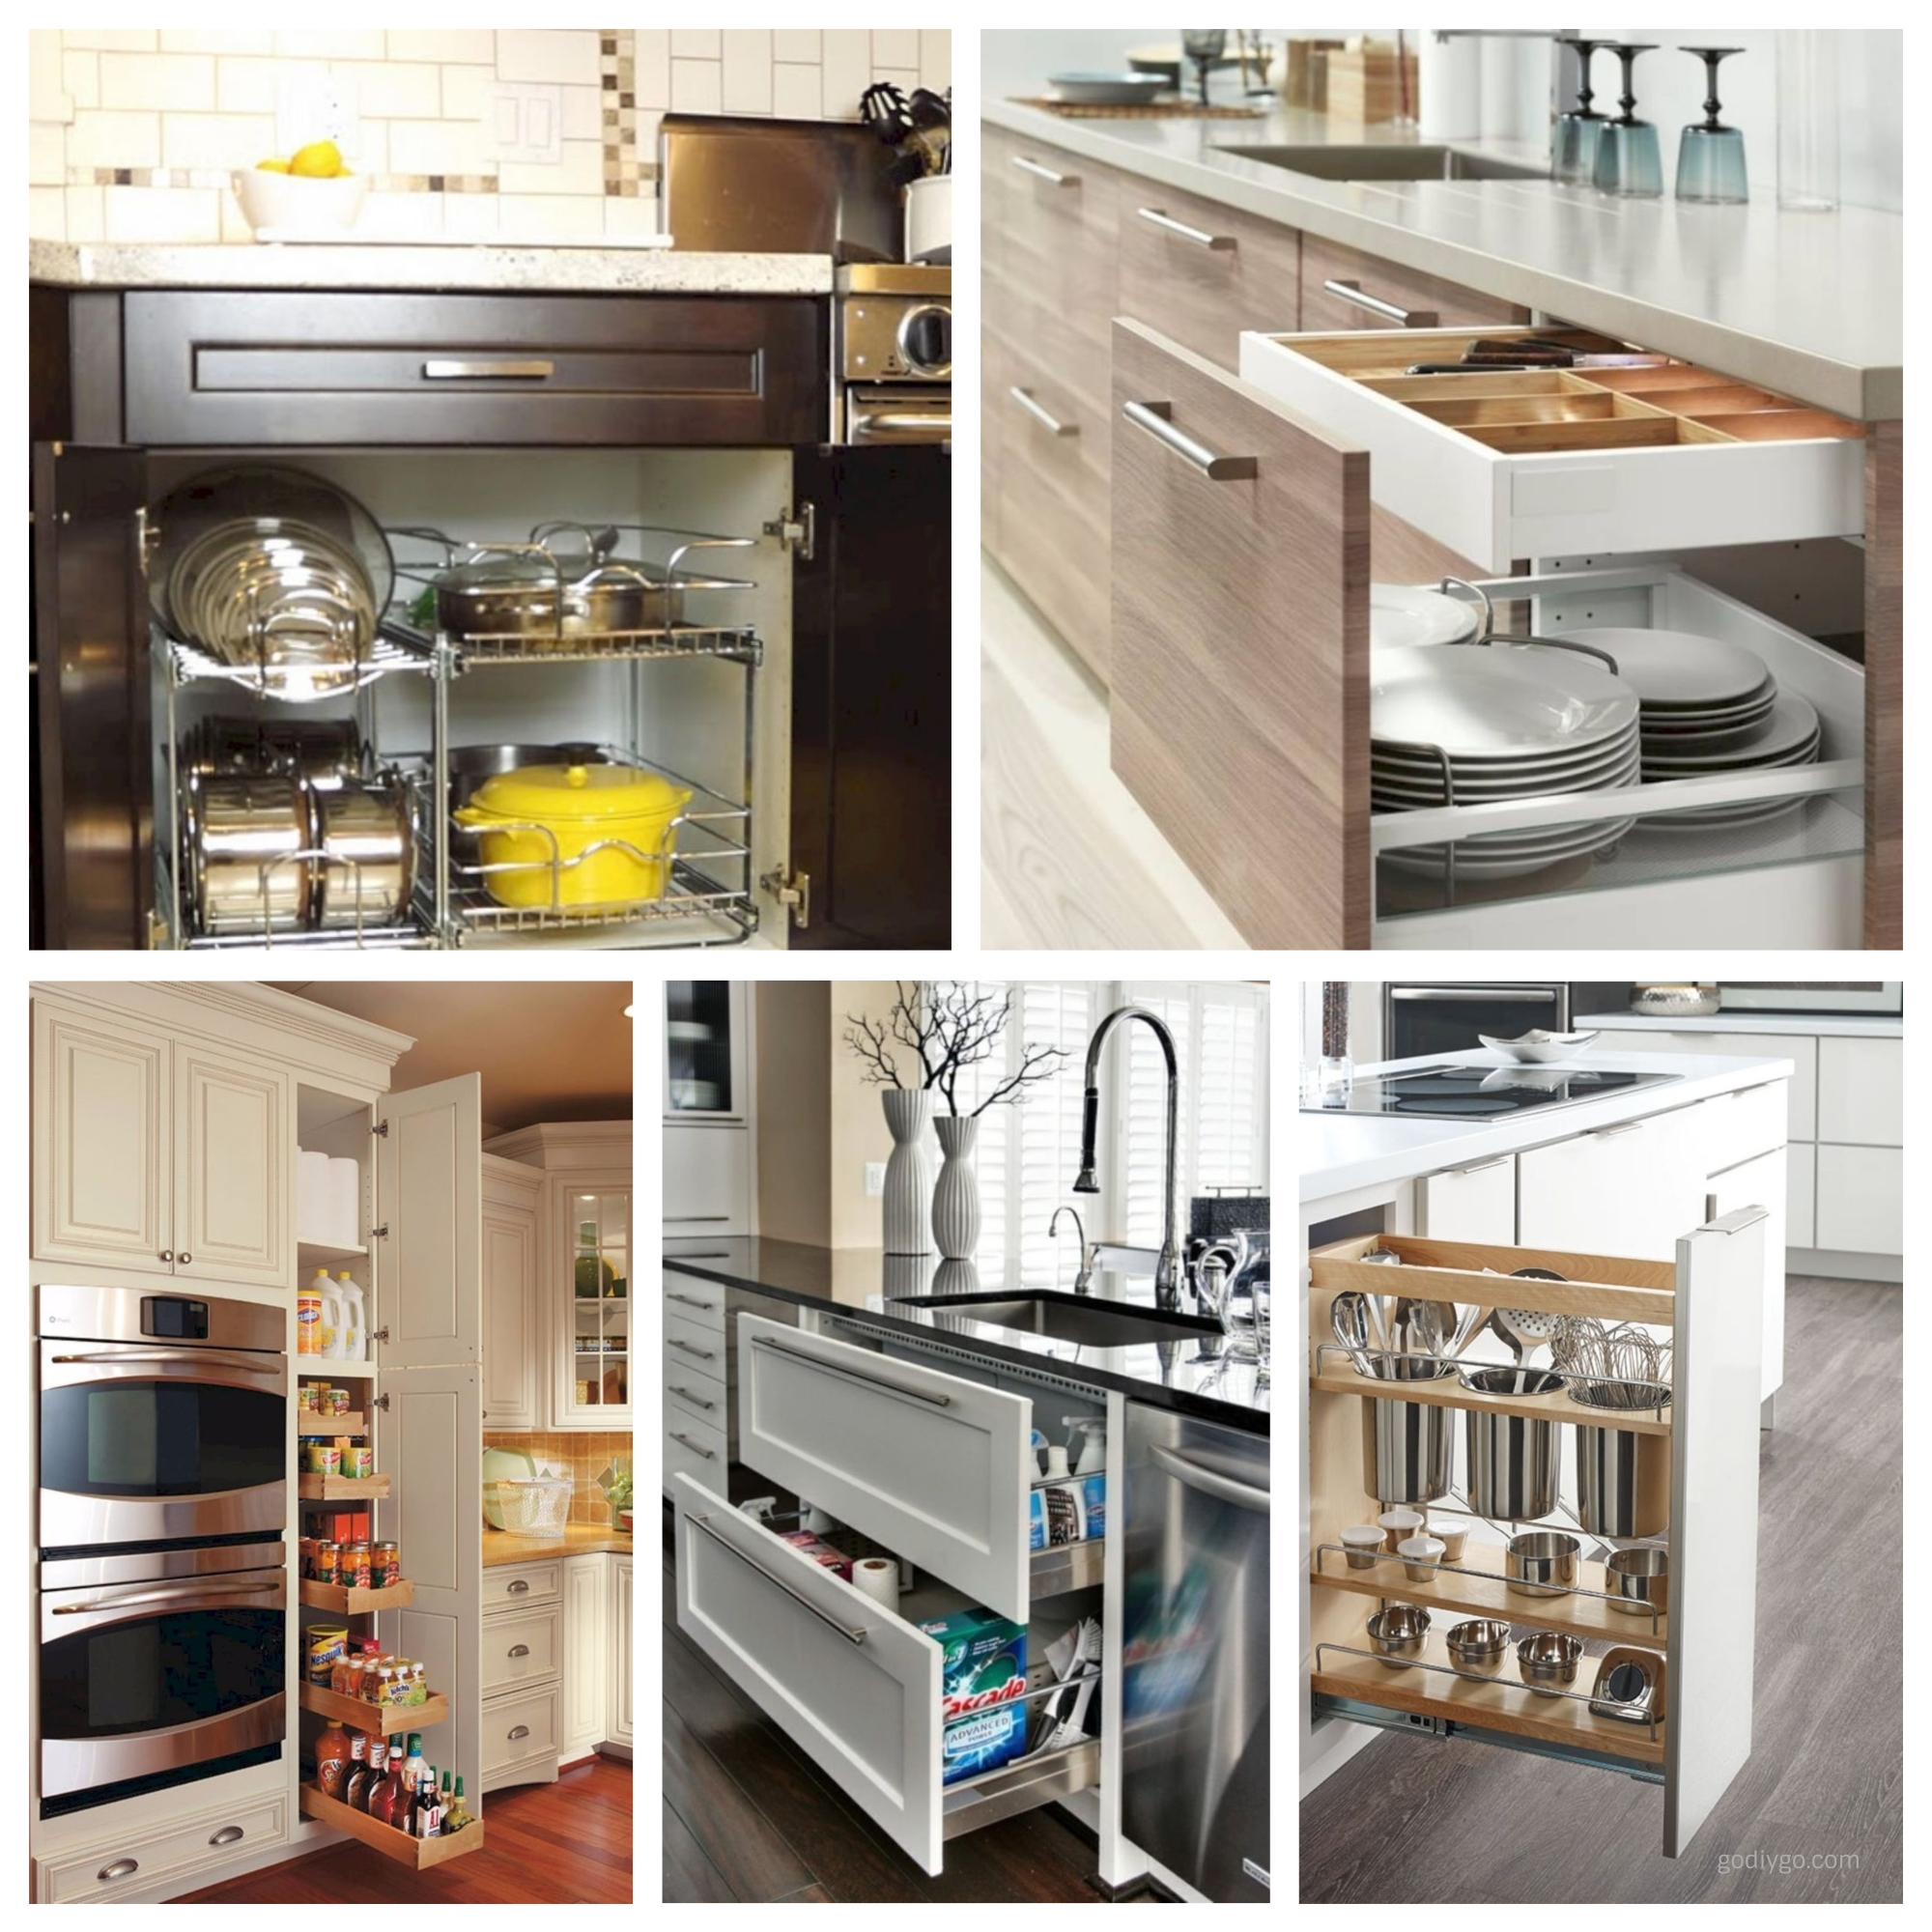 10 Kitchen Cabinet Tips: 44 Smart Kitchen Cabinet Organization Ideas